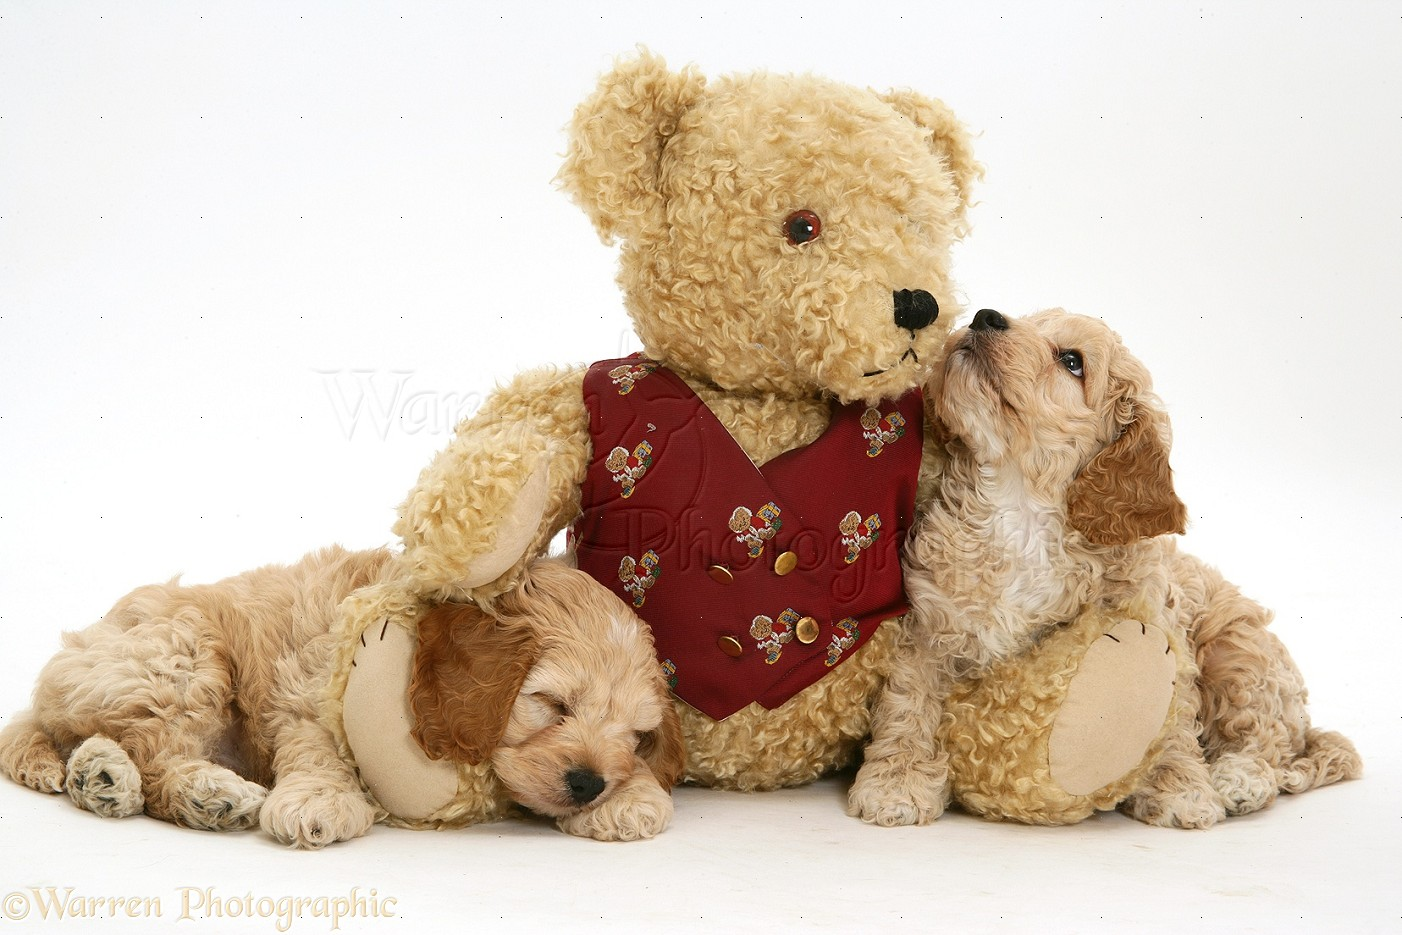 Dogs American Cockapoo Puppies With A Teddy Bear Photo Wp15031